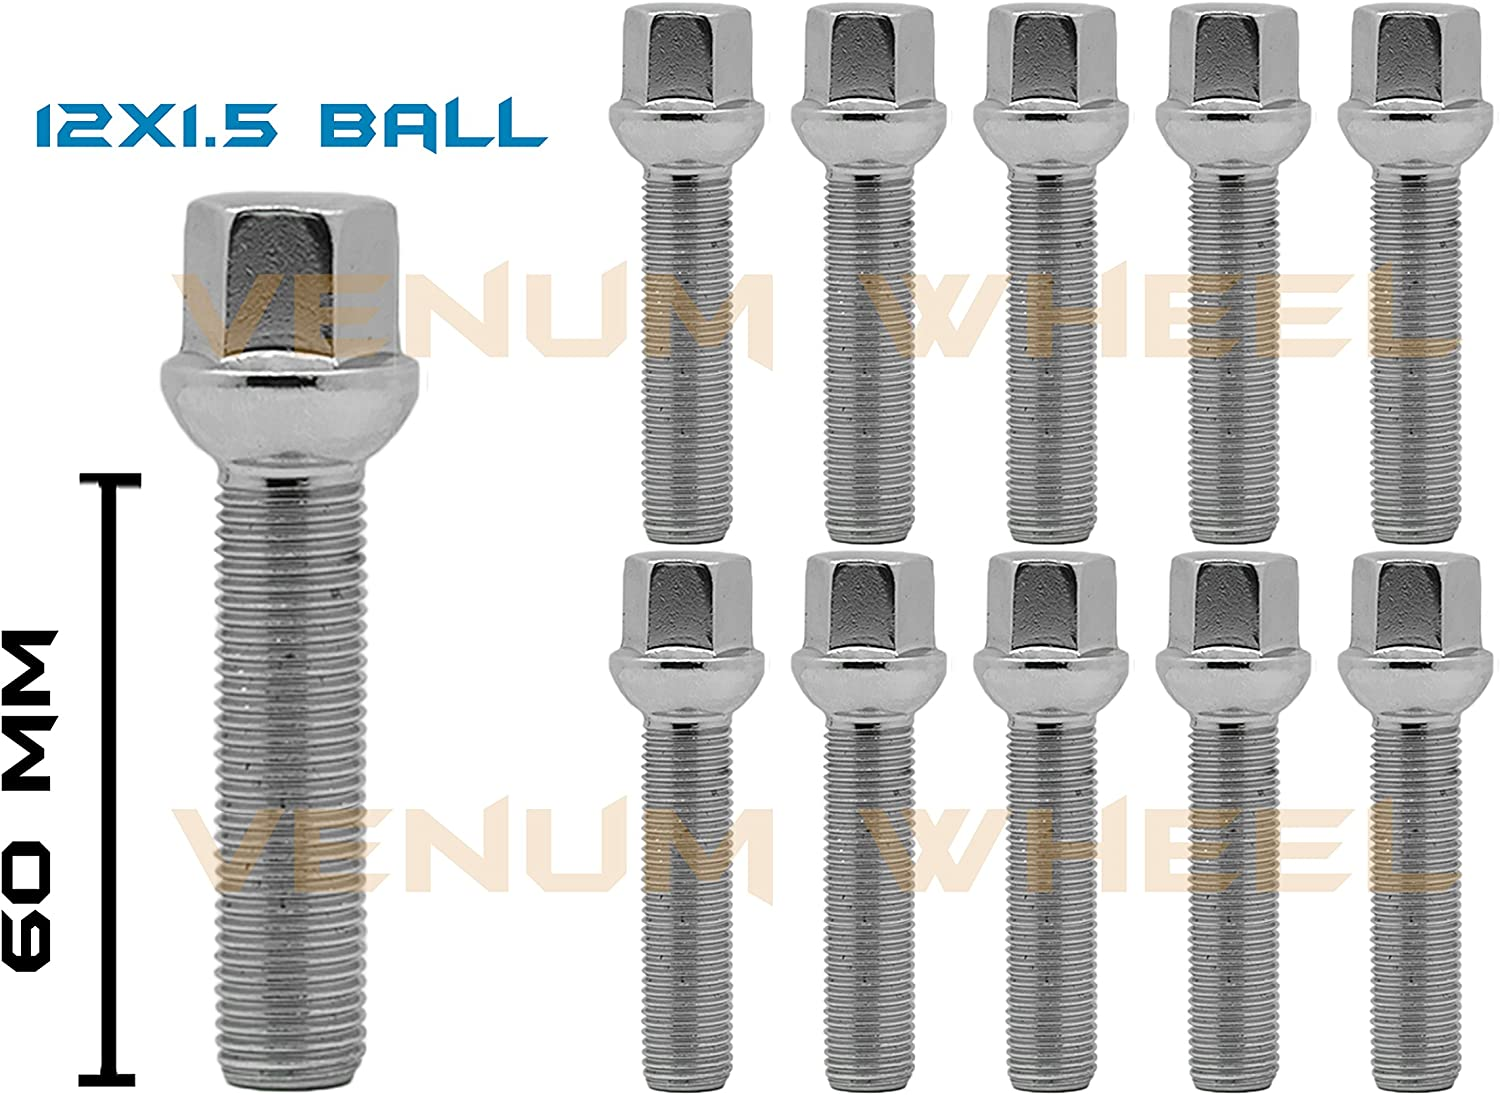 20 Pieces Extended Black Lug Bolts Total Length 57mm Shank Length 33mm Thread Size M12x1.5 Ball Seat Type 17mm Head Hex for Aftermarket rims wheels